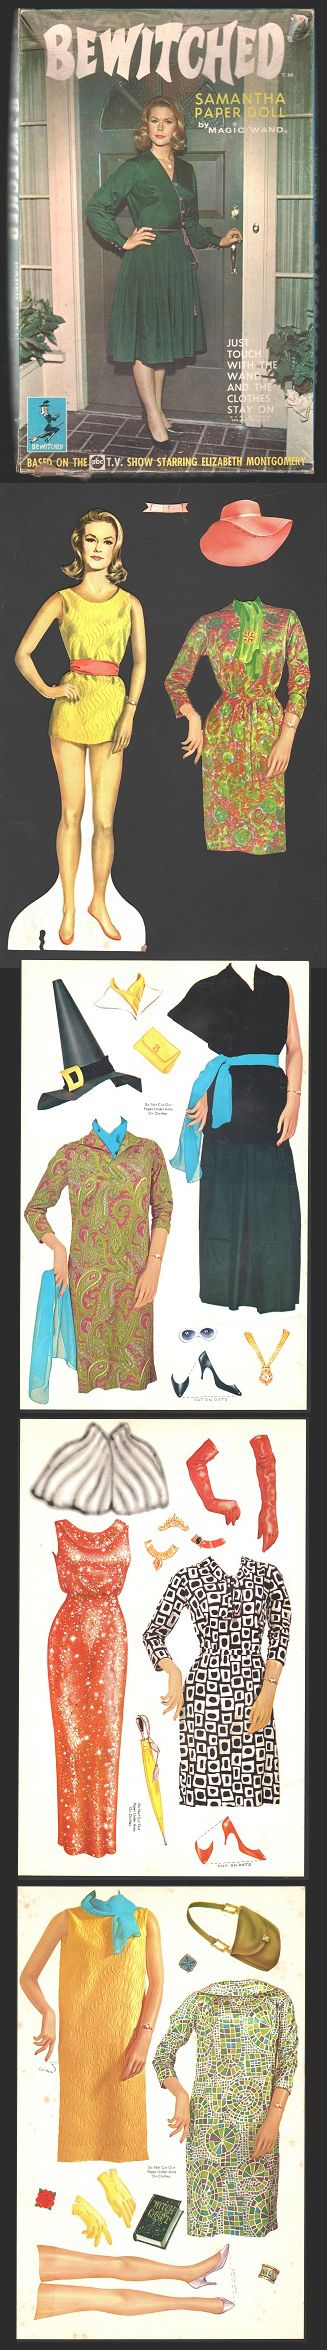 Bewitched paper dolls (one of my favorite shows when I was little)